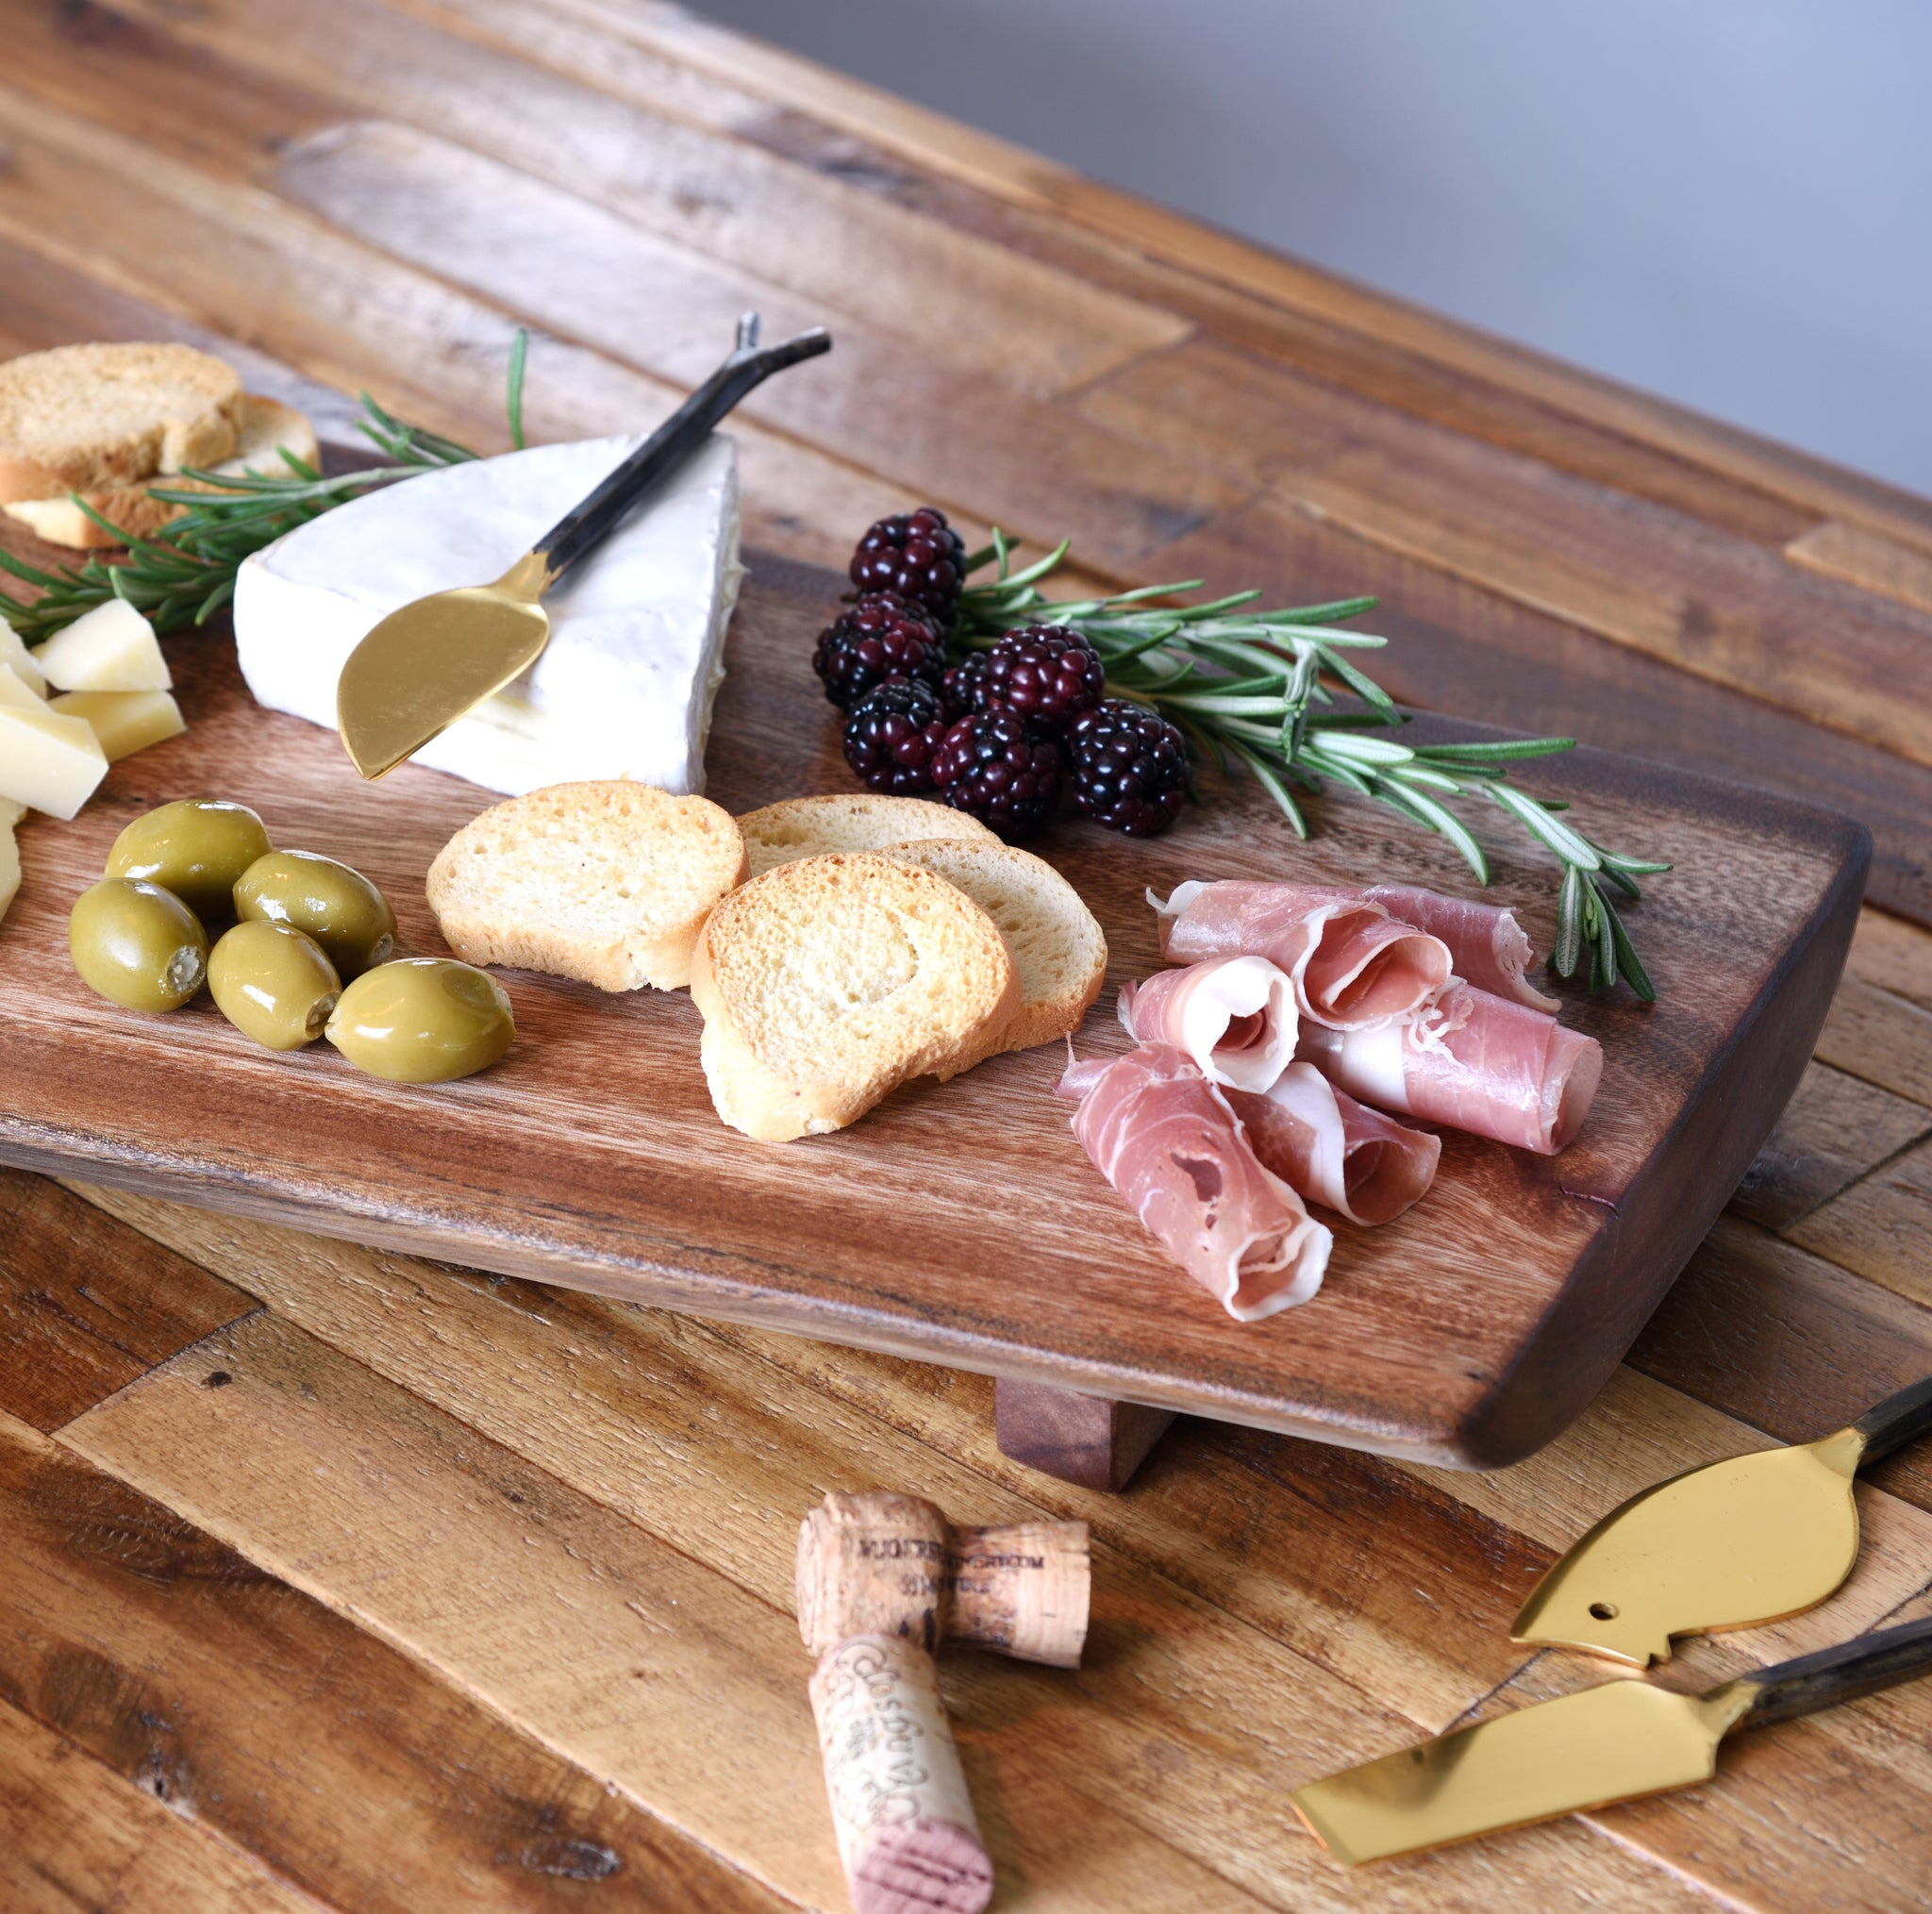 Premium Large Reclaimed Wood Live Edge Cheese Board Tray